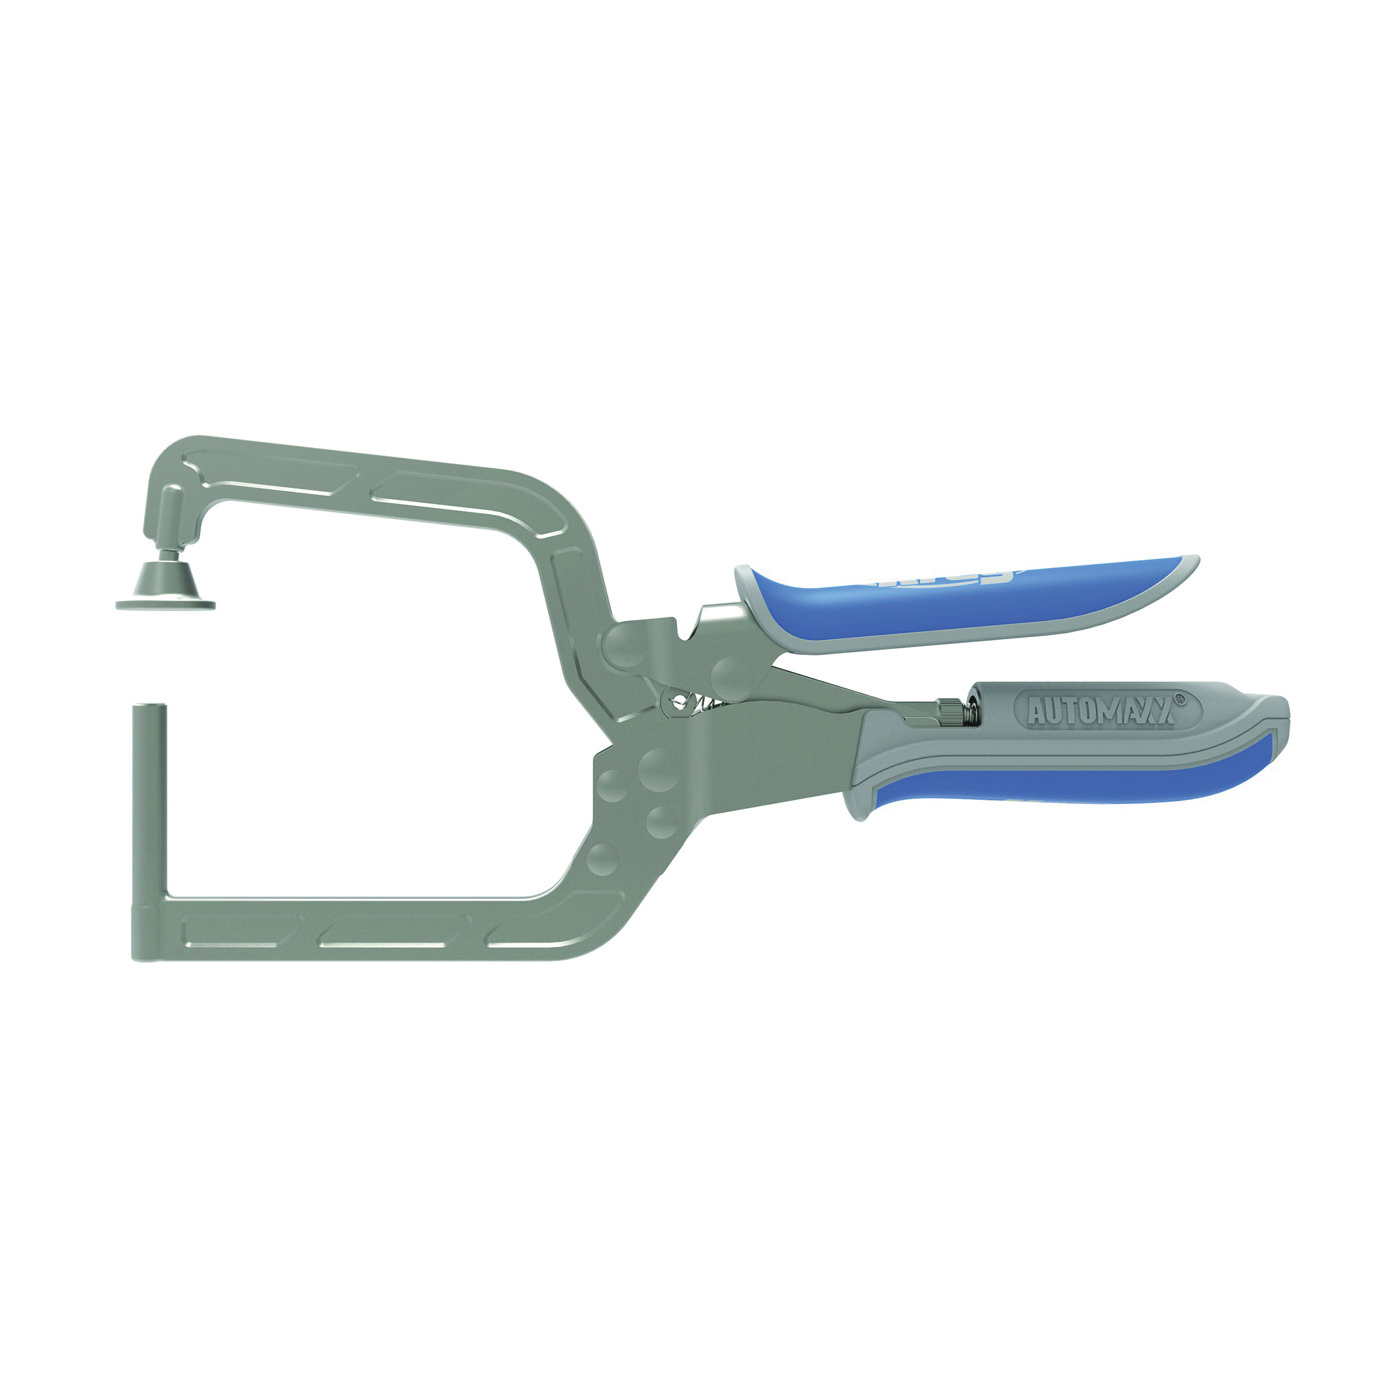 Picture of Kreg KHCRA Clamp, 5 in Max Opening Size, Metal Body